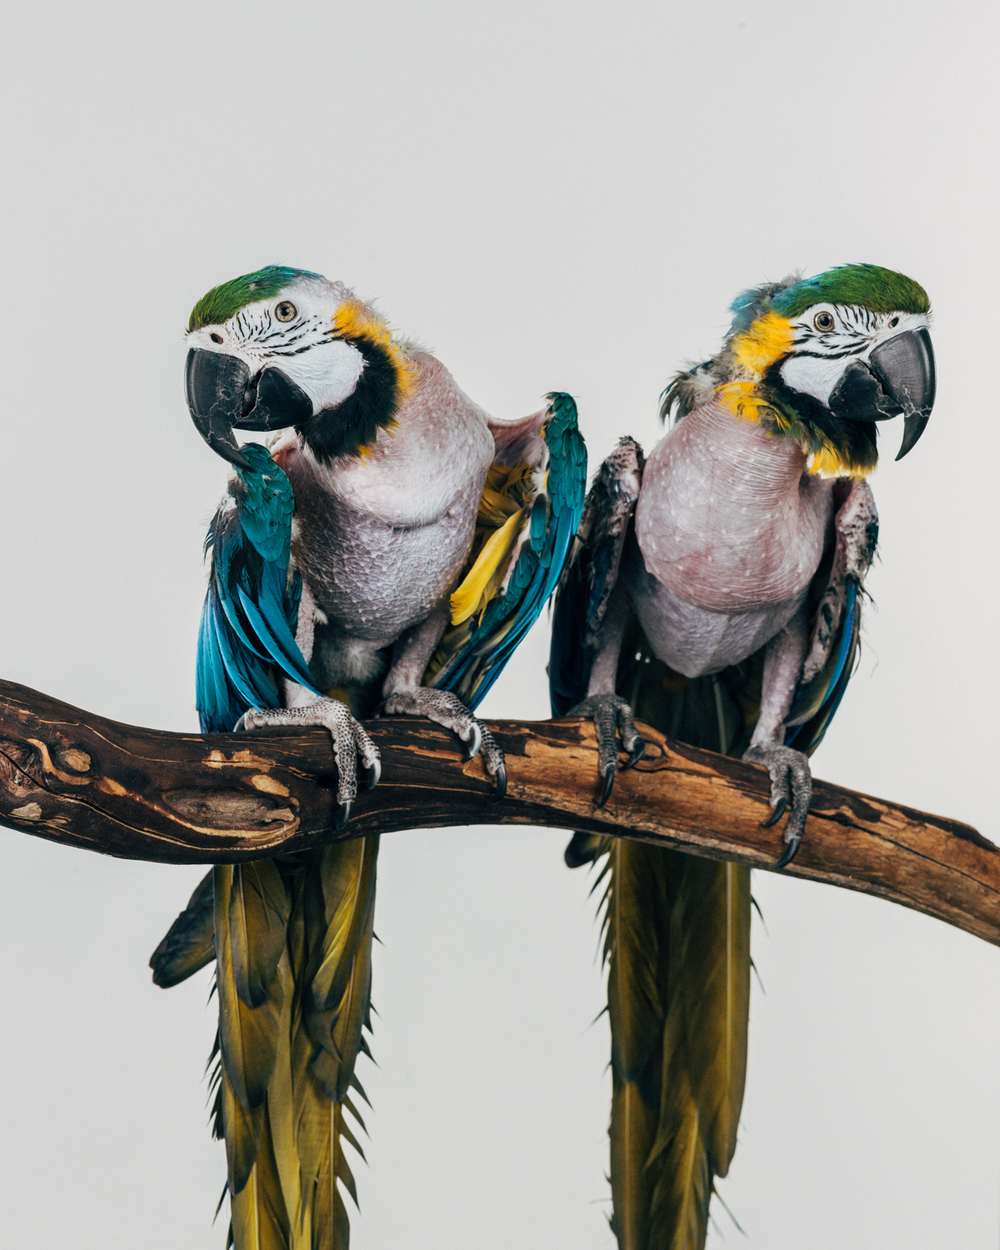 CHLOE & MERLOT   Females. Gold and blue macaws                                                (Ara ararauna)  Age: unkown  They both came from a sanctuary in Portland, Oregon. Both severely plucked with blown air sacs and cataracts. They go everywhere together.